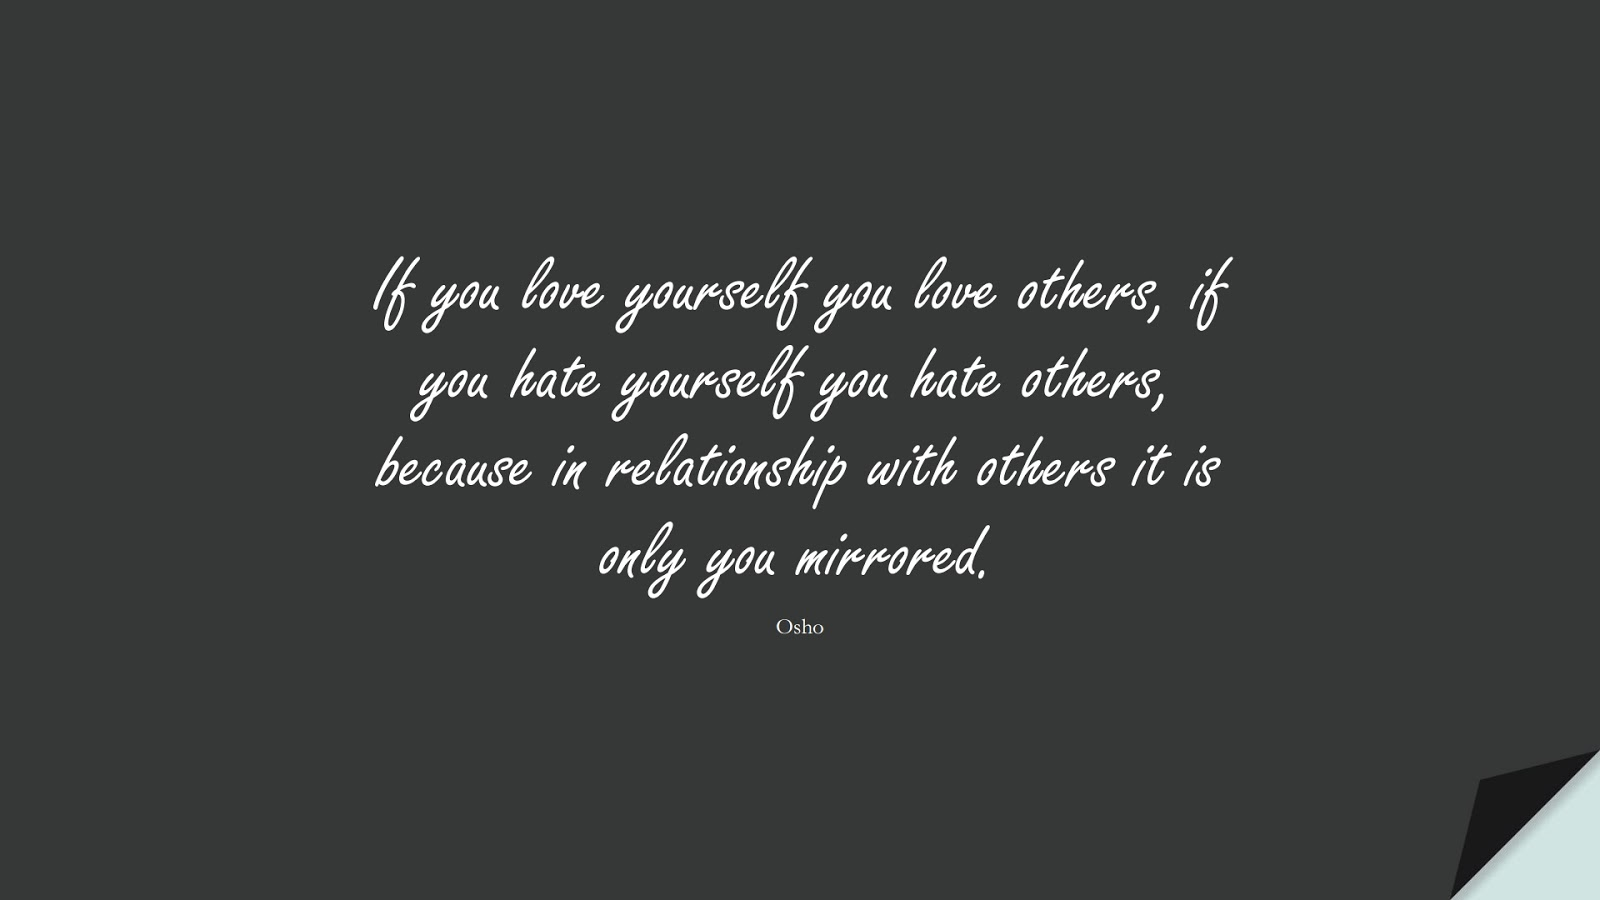 If you love yourself you love others, if you hate yourself you hate others, because in relationship with others it is only you mirrored. (Osho);  #RelationshipQuotes